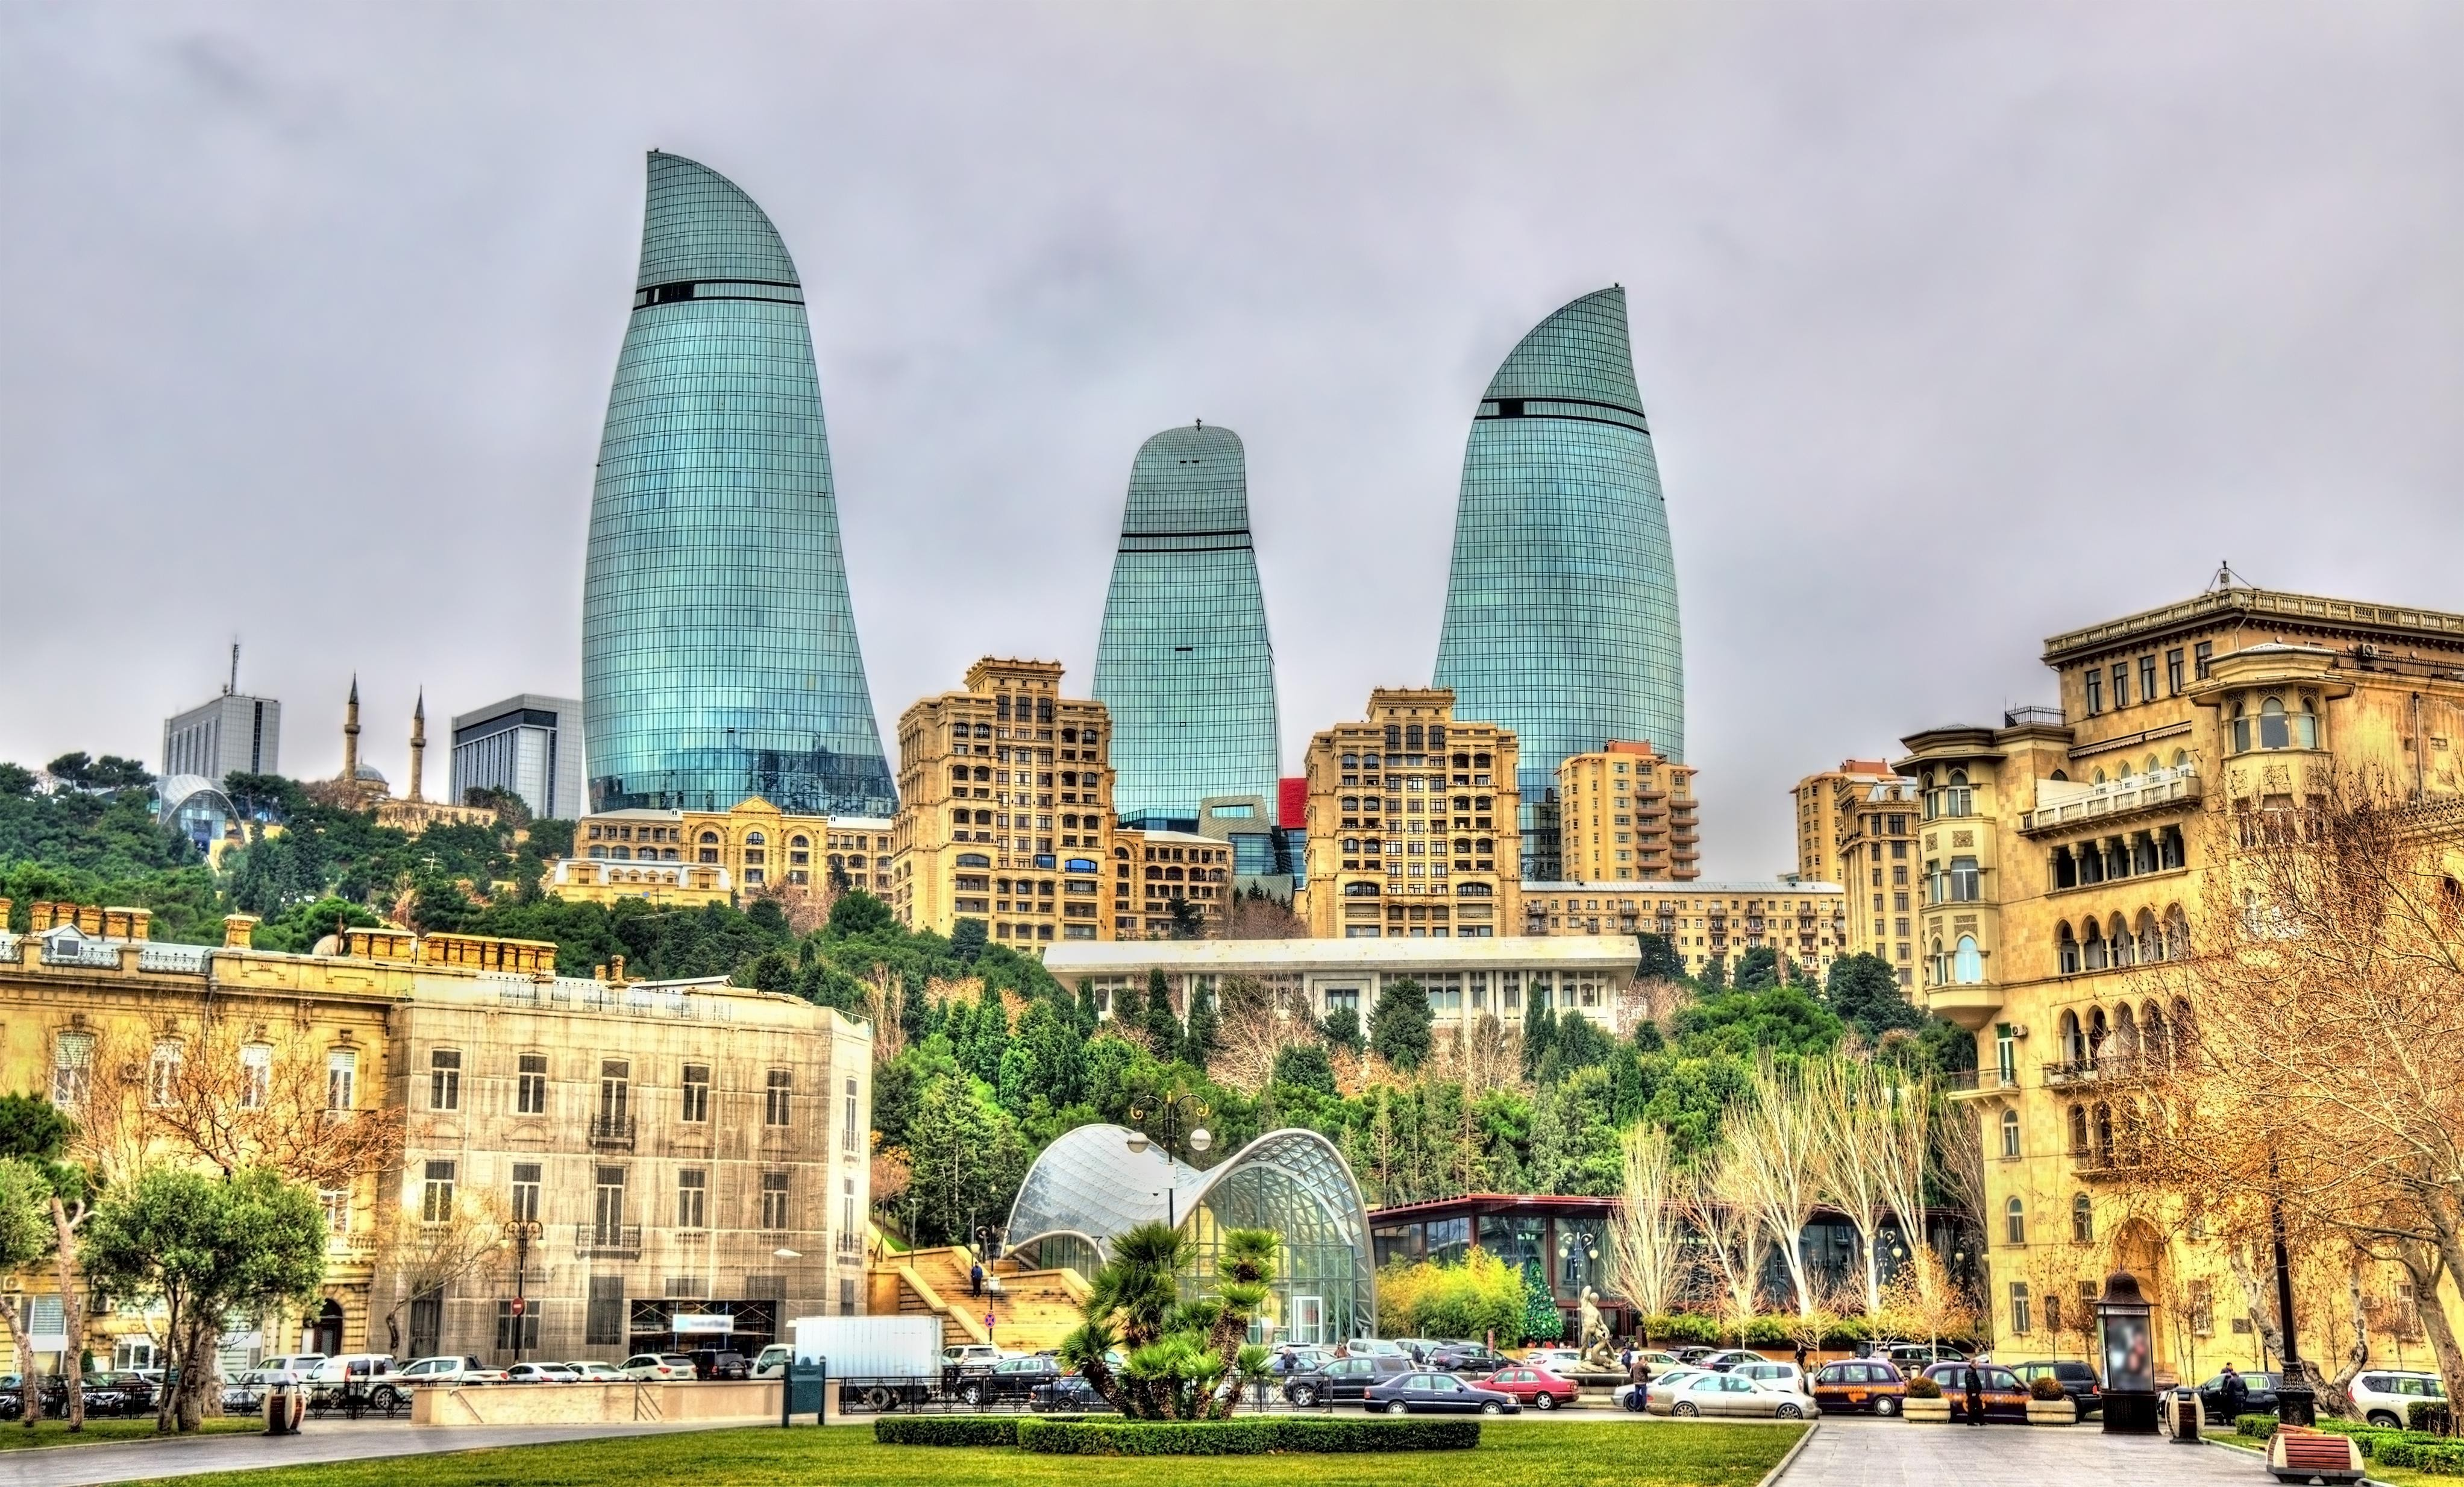 How to Spend 1 Day in Baku